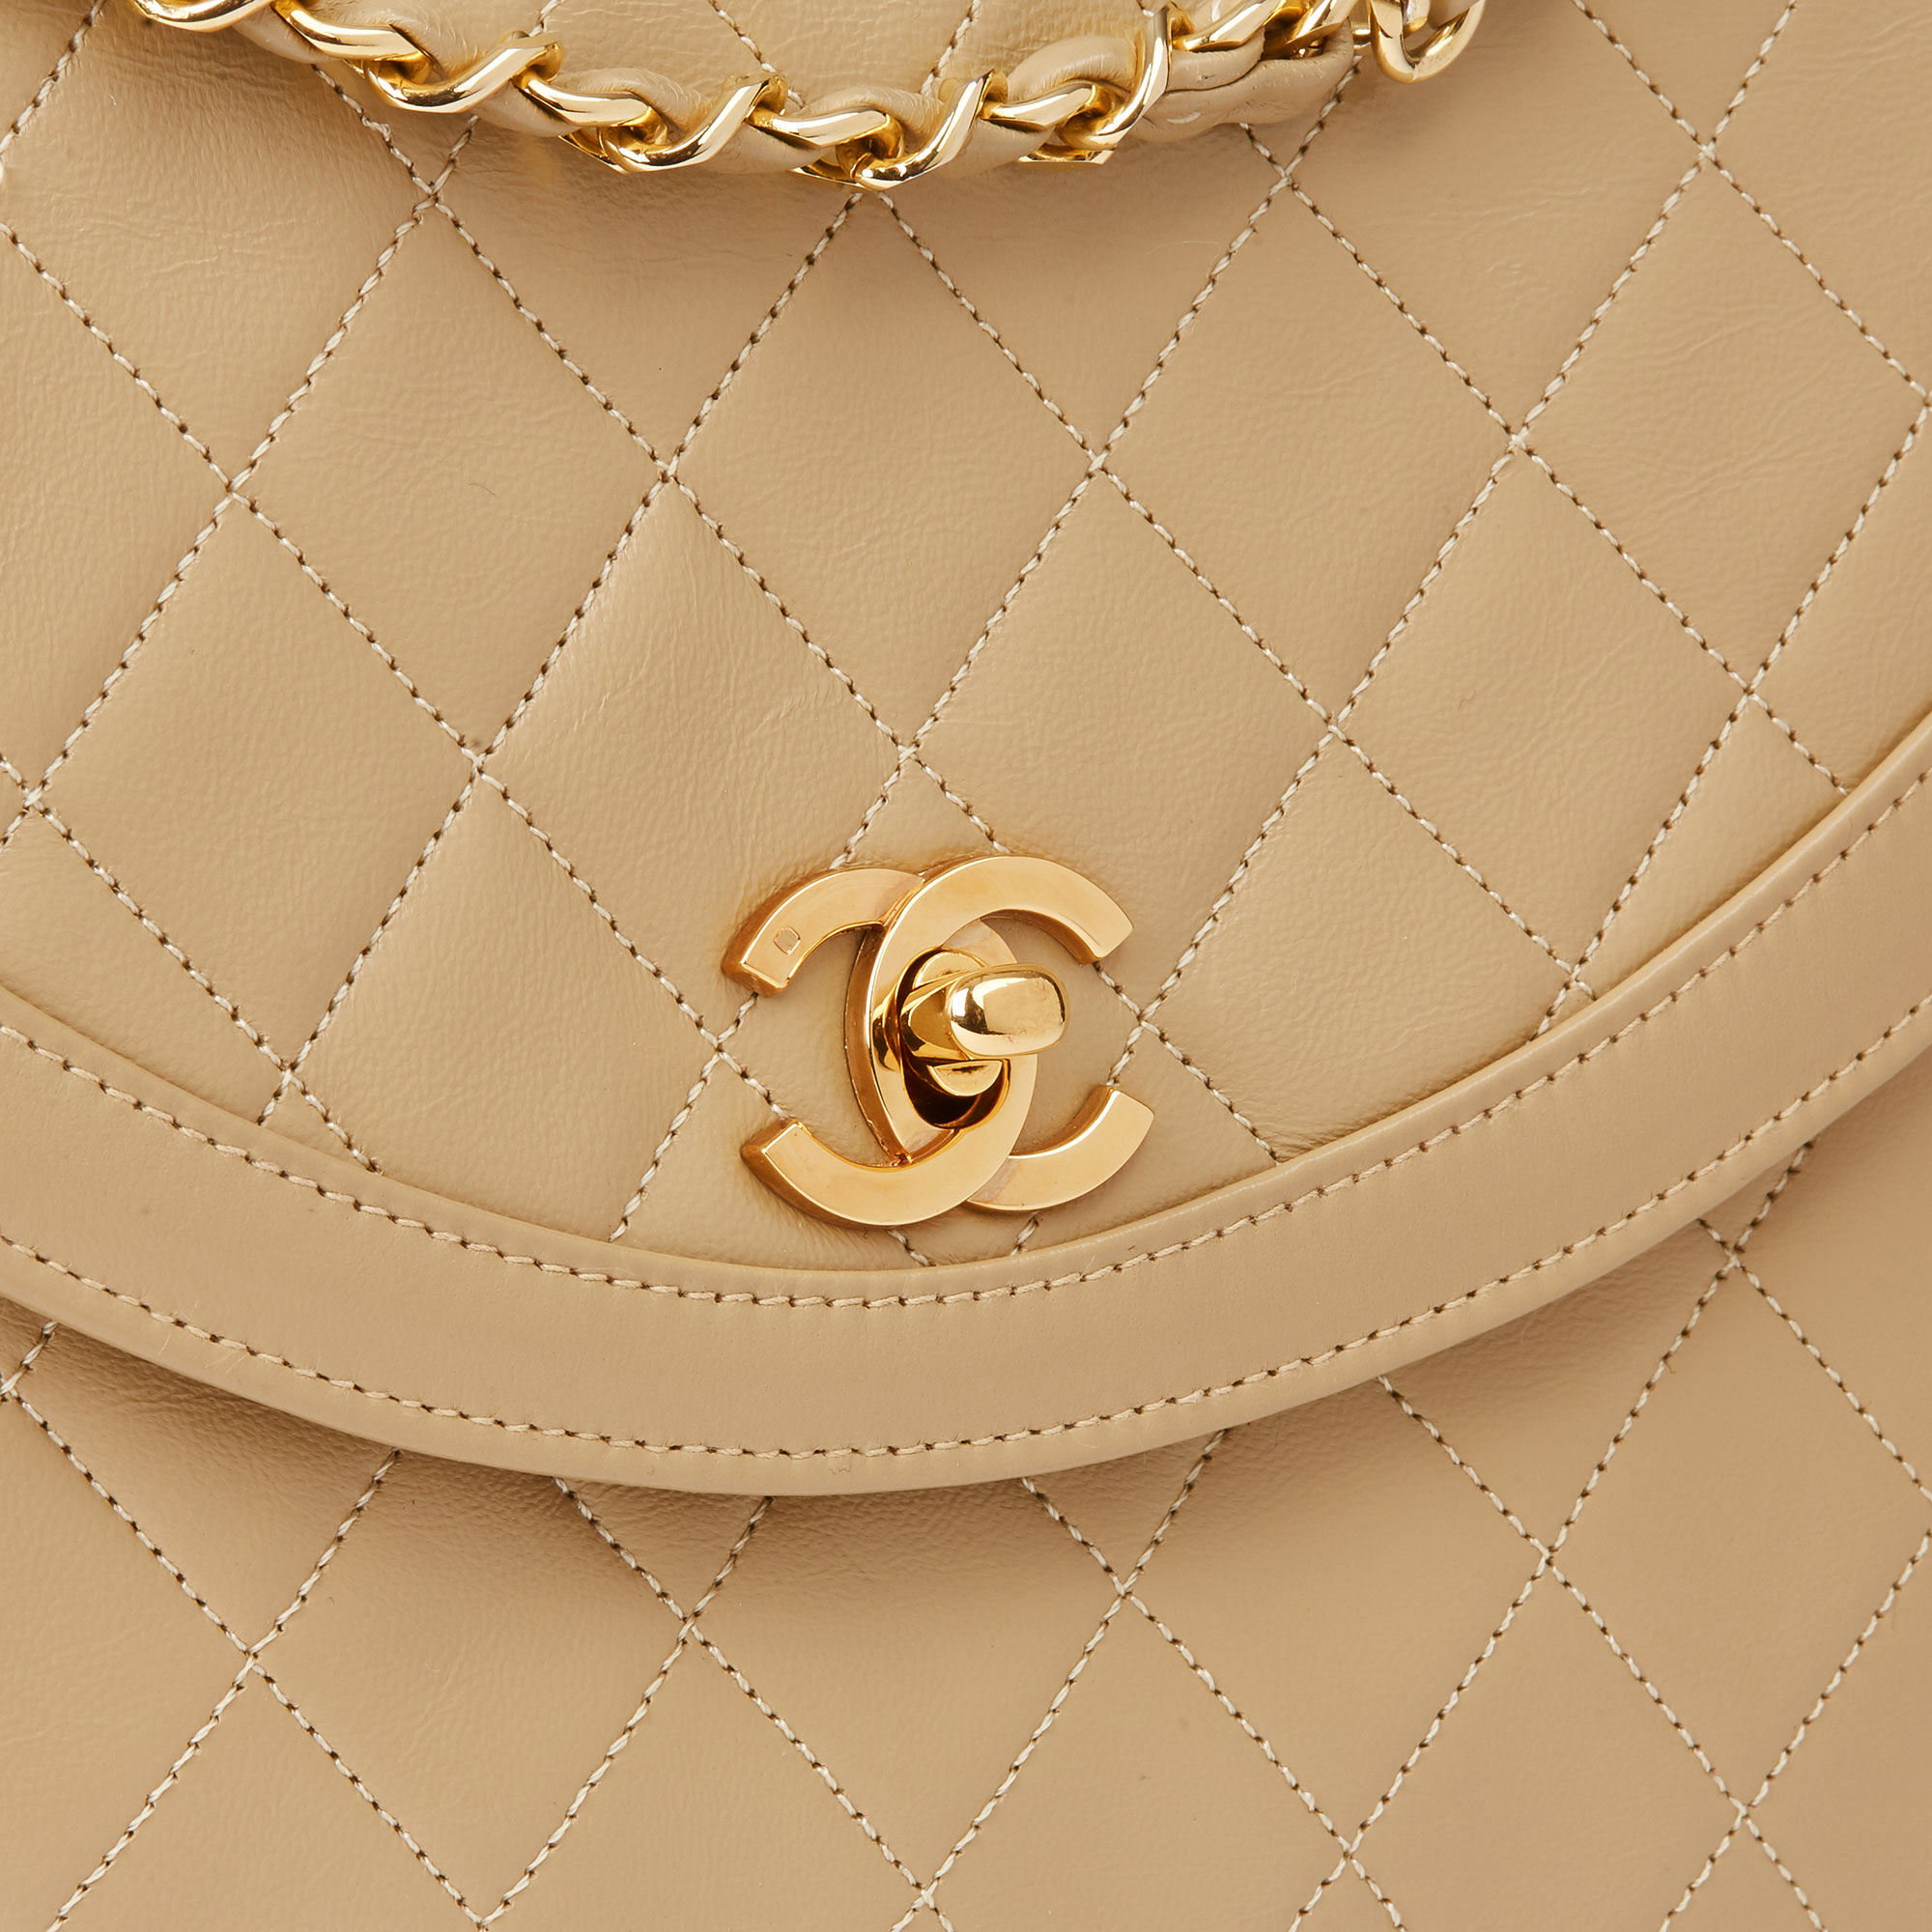 Chanel Dark Beige Quilted Lambskin Vintage Classic Single Flap Bag - Image 7 of 11